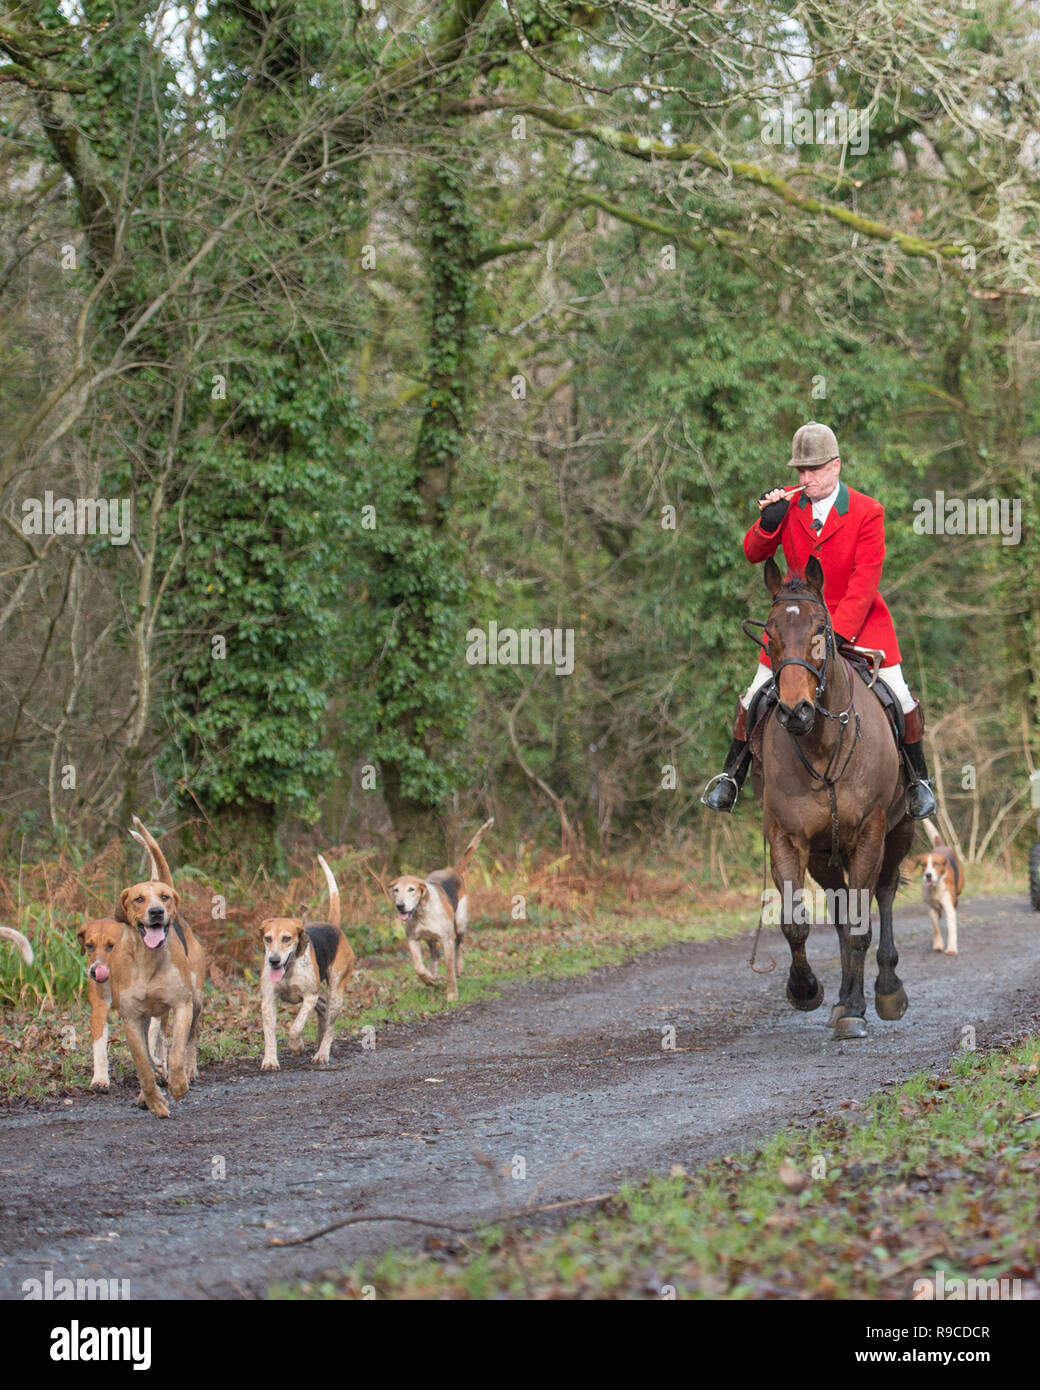 huntsman with pack of hounds - Stock Image